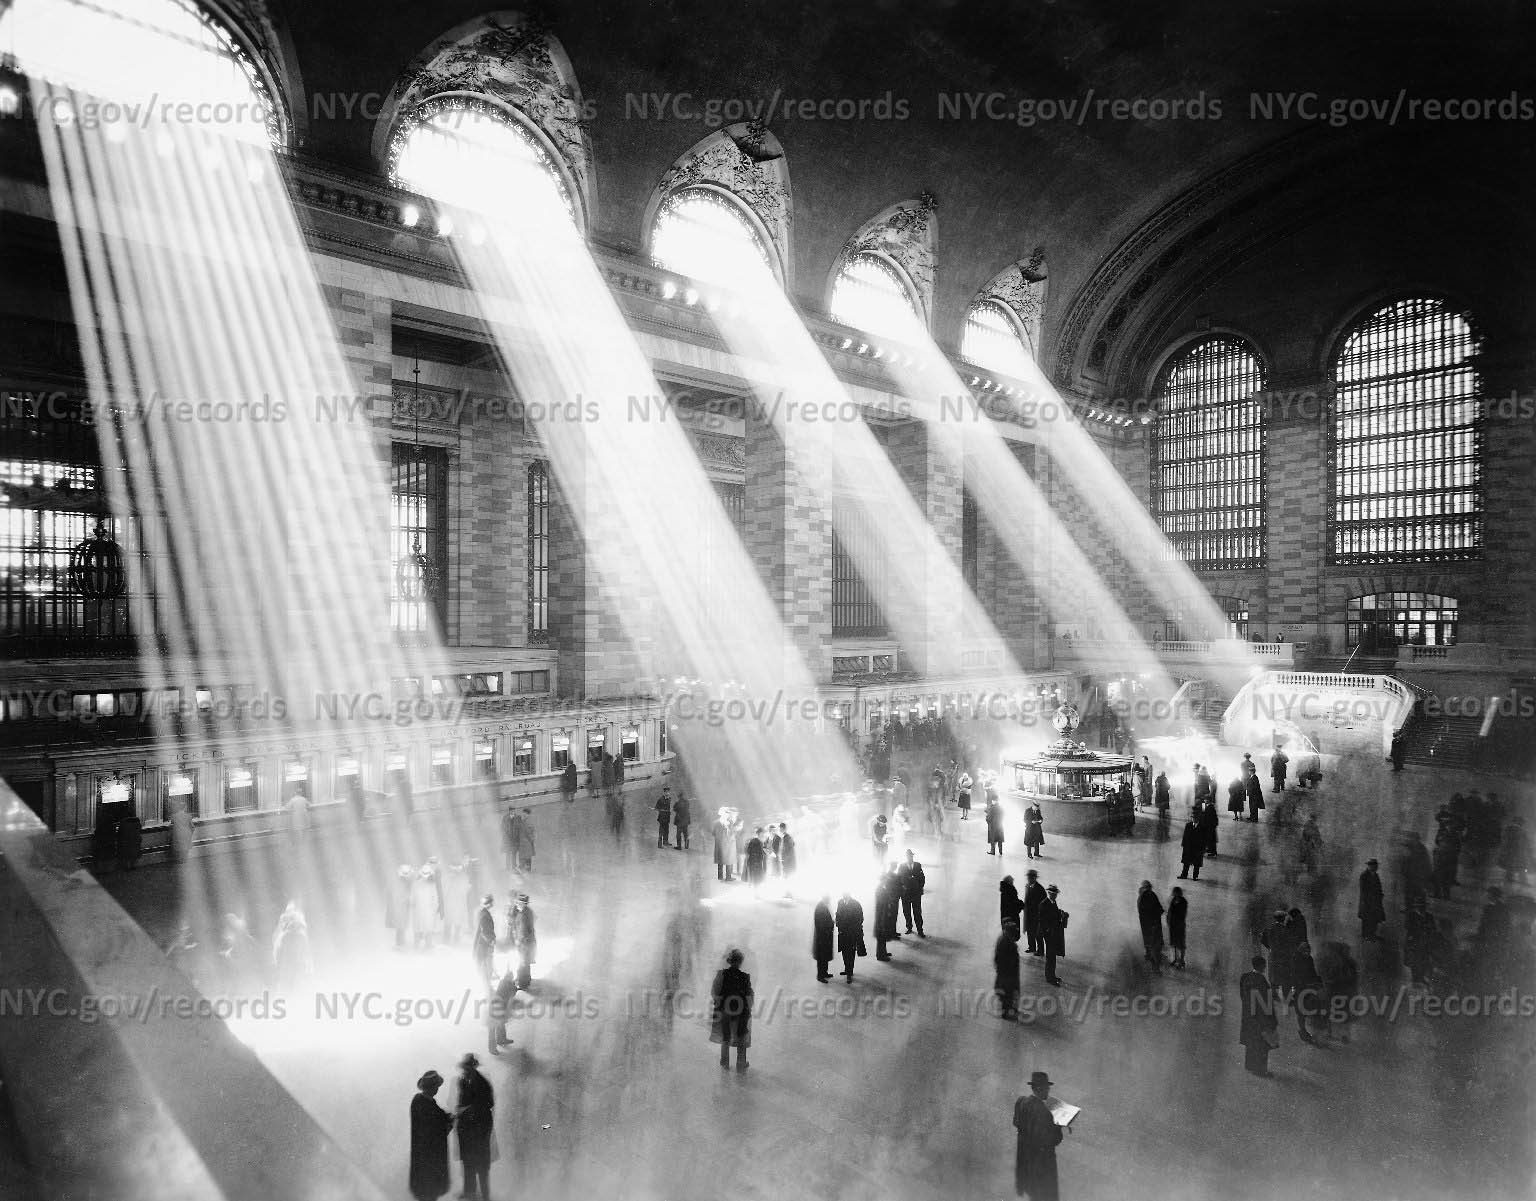 Vaulted main room of Grand Central Terminal, New York City